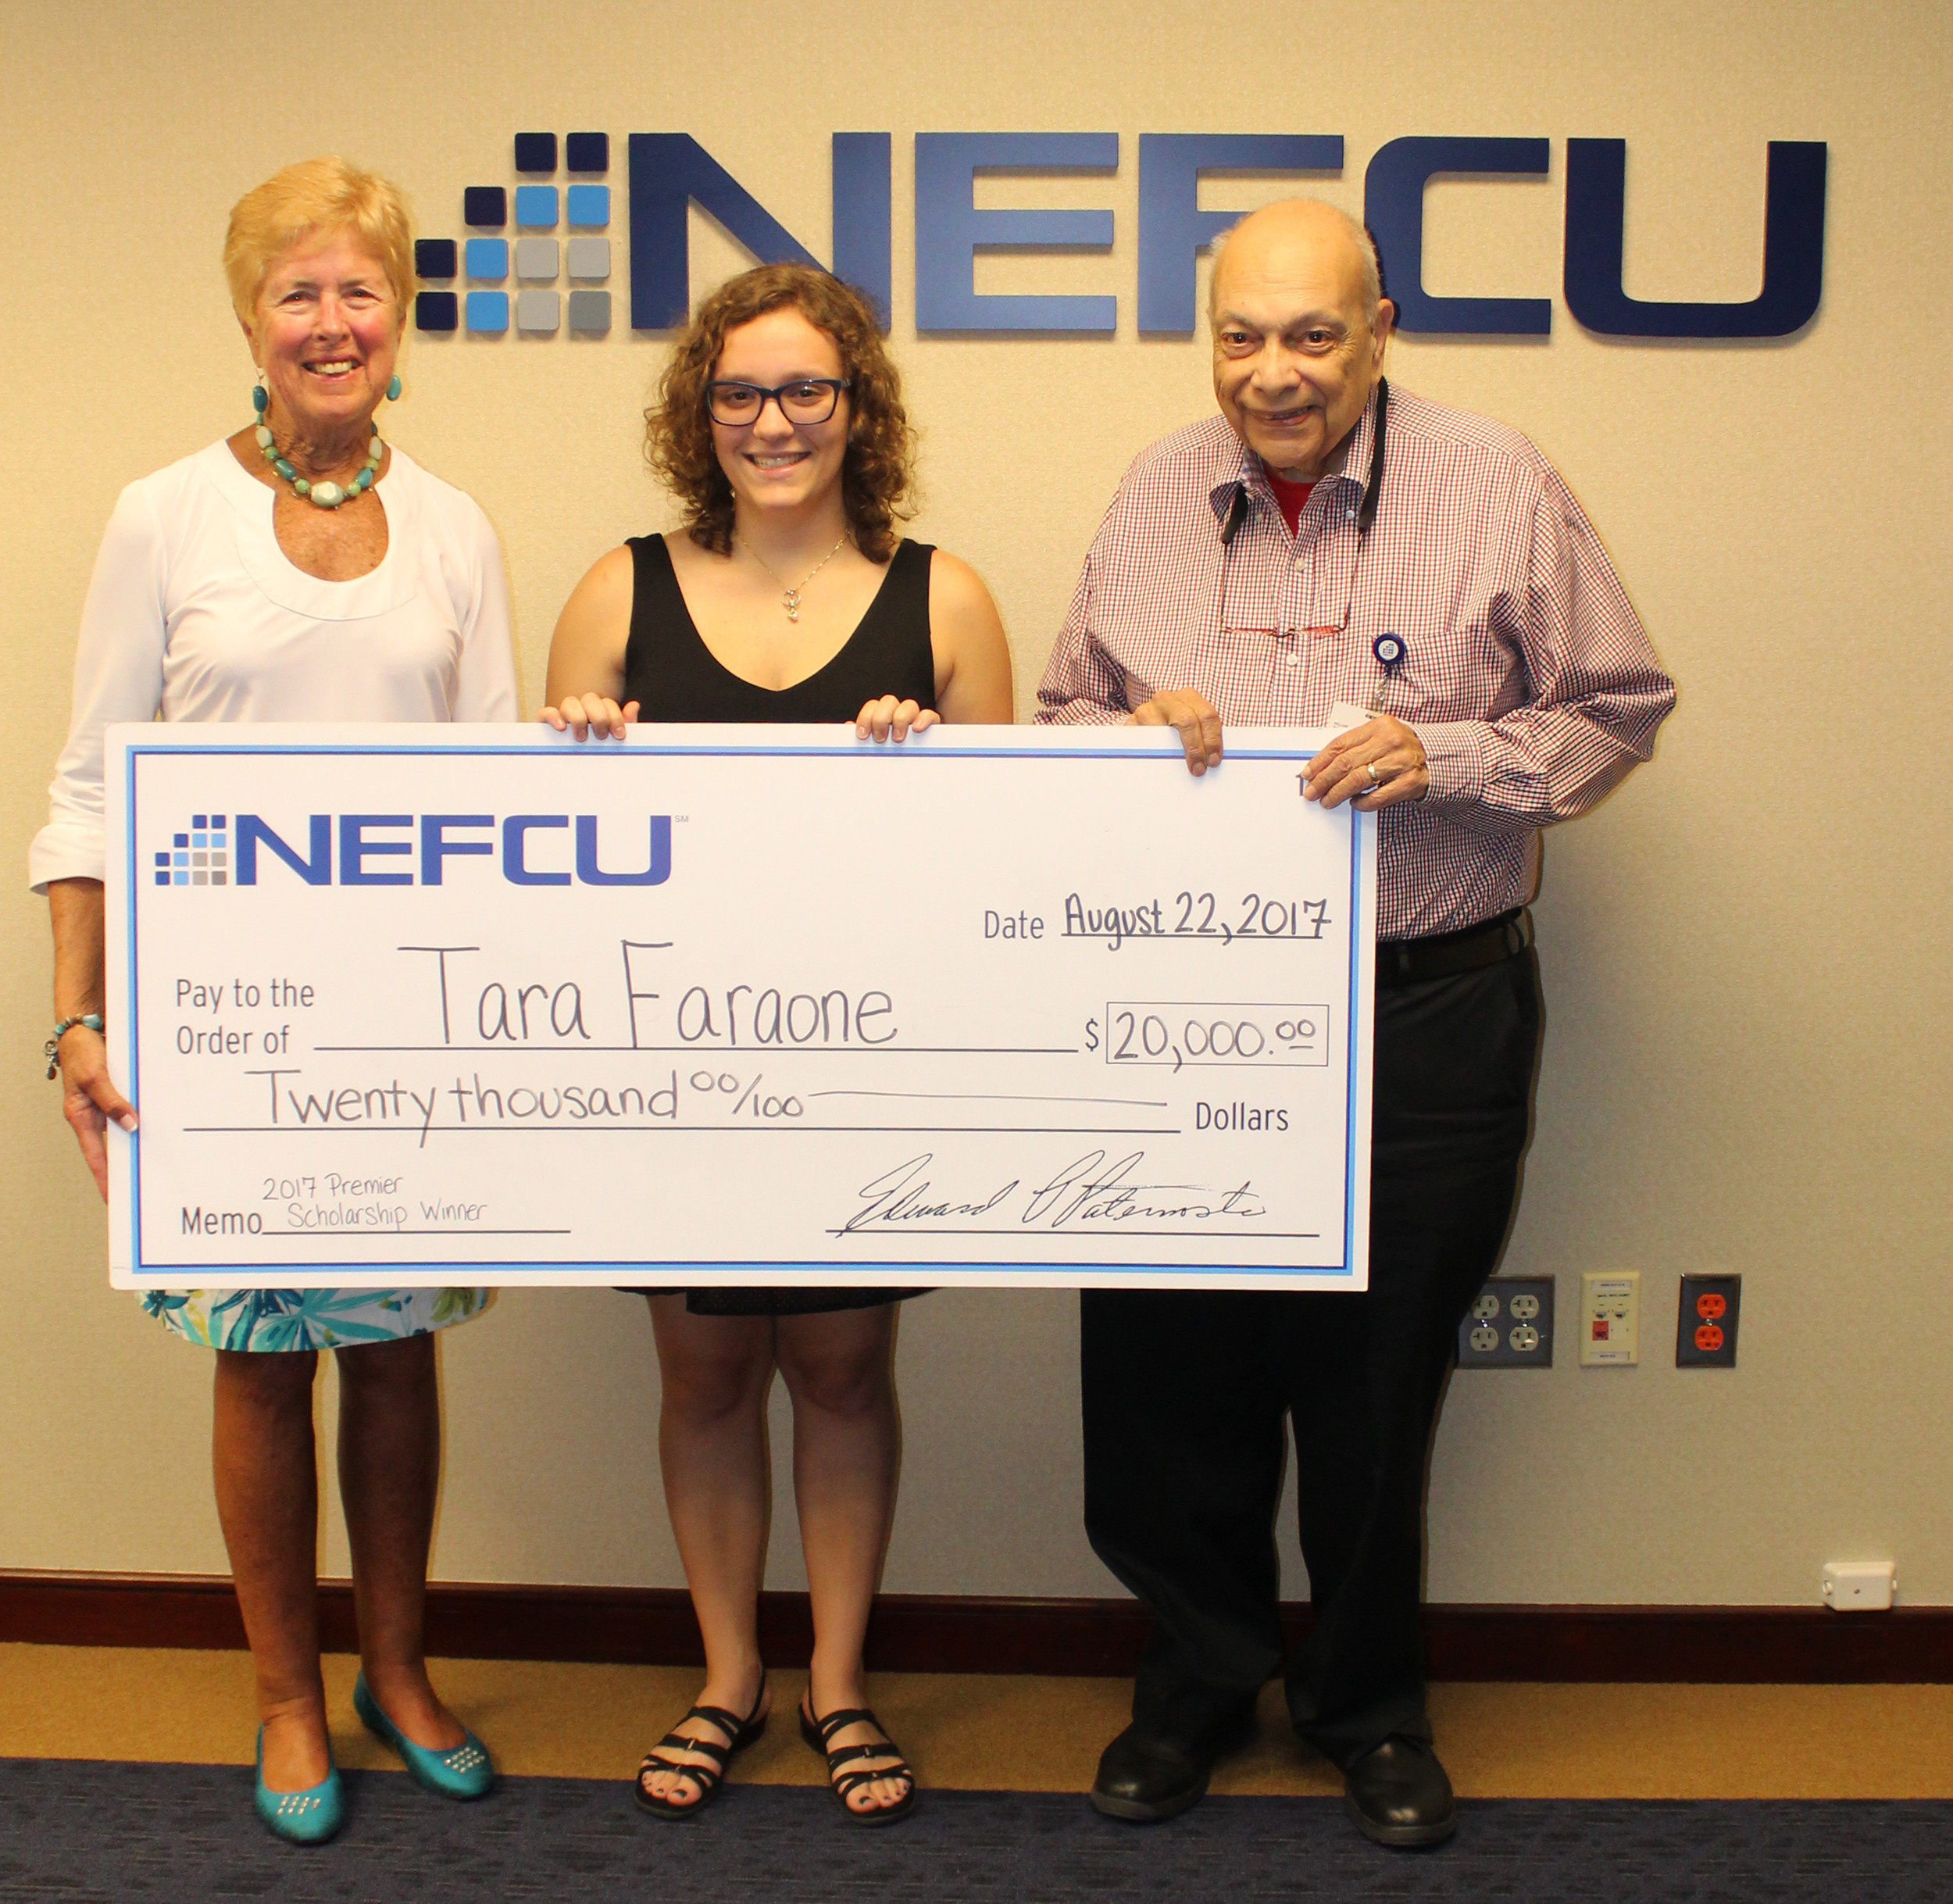 Tara Faraone was presented with a ceremonial scholarship check at NEFCU's Westbury headquarters on Aug. 22. With her were Suzanne Boehmcke, vice chair of both the Supervisory Committee and the Scholarship Committee, and Dr. William J. Russo, secretary of the NEFCU board of directors and chairman of the Scholarship Committee.